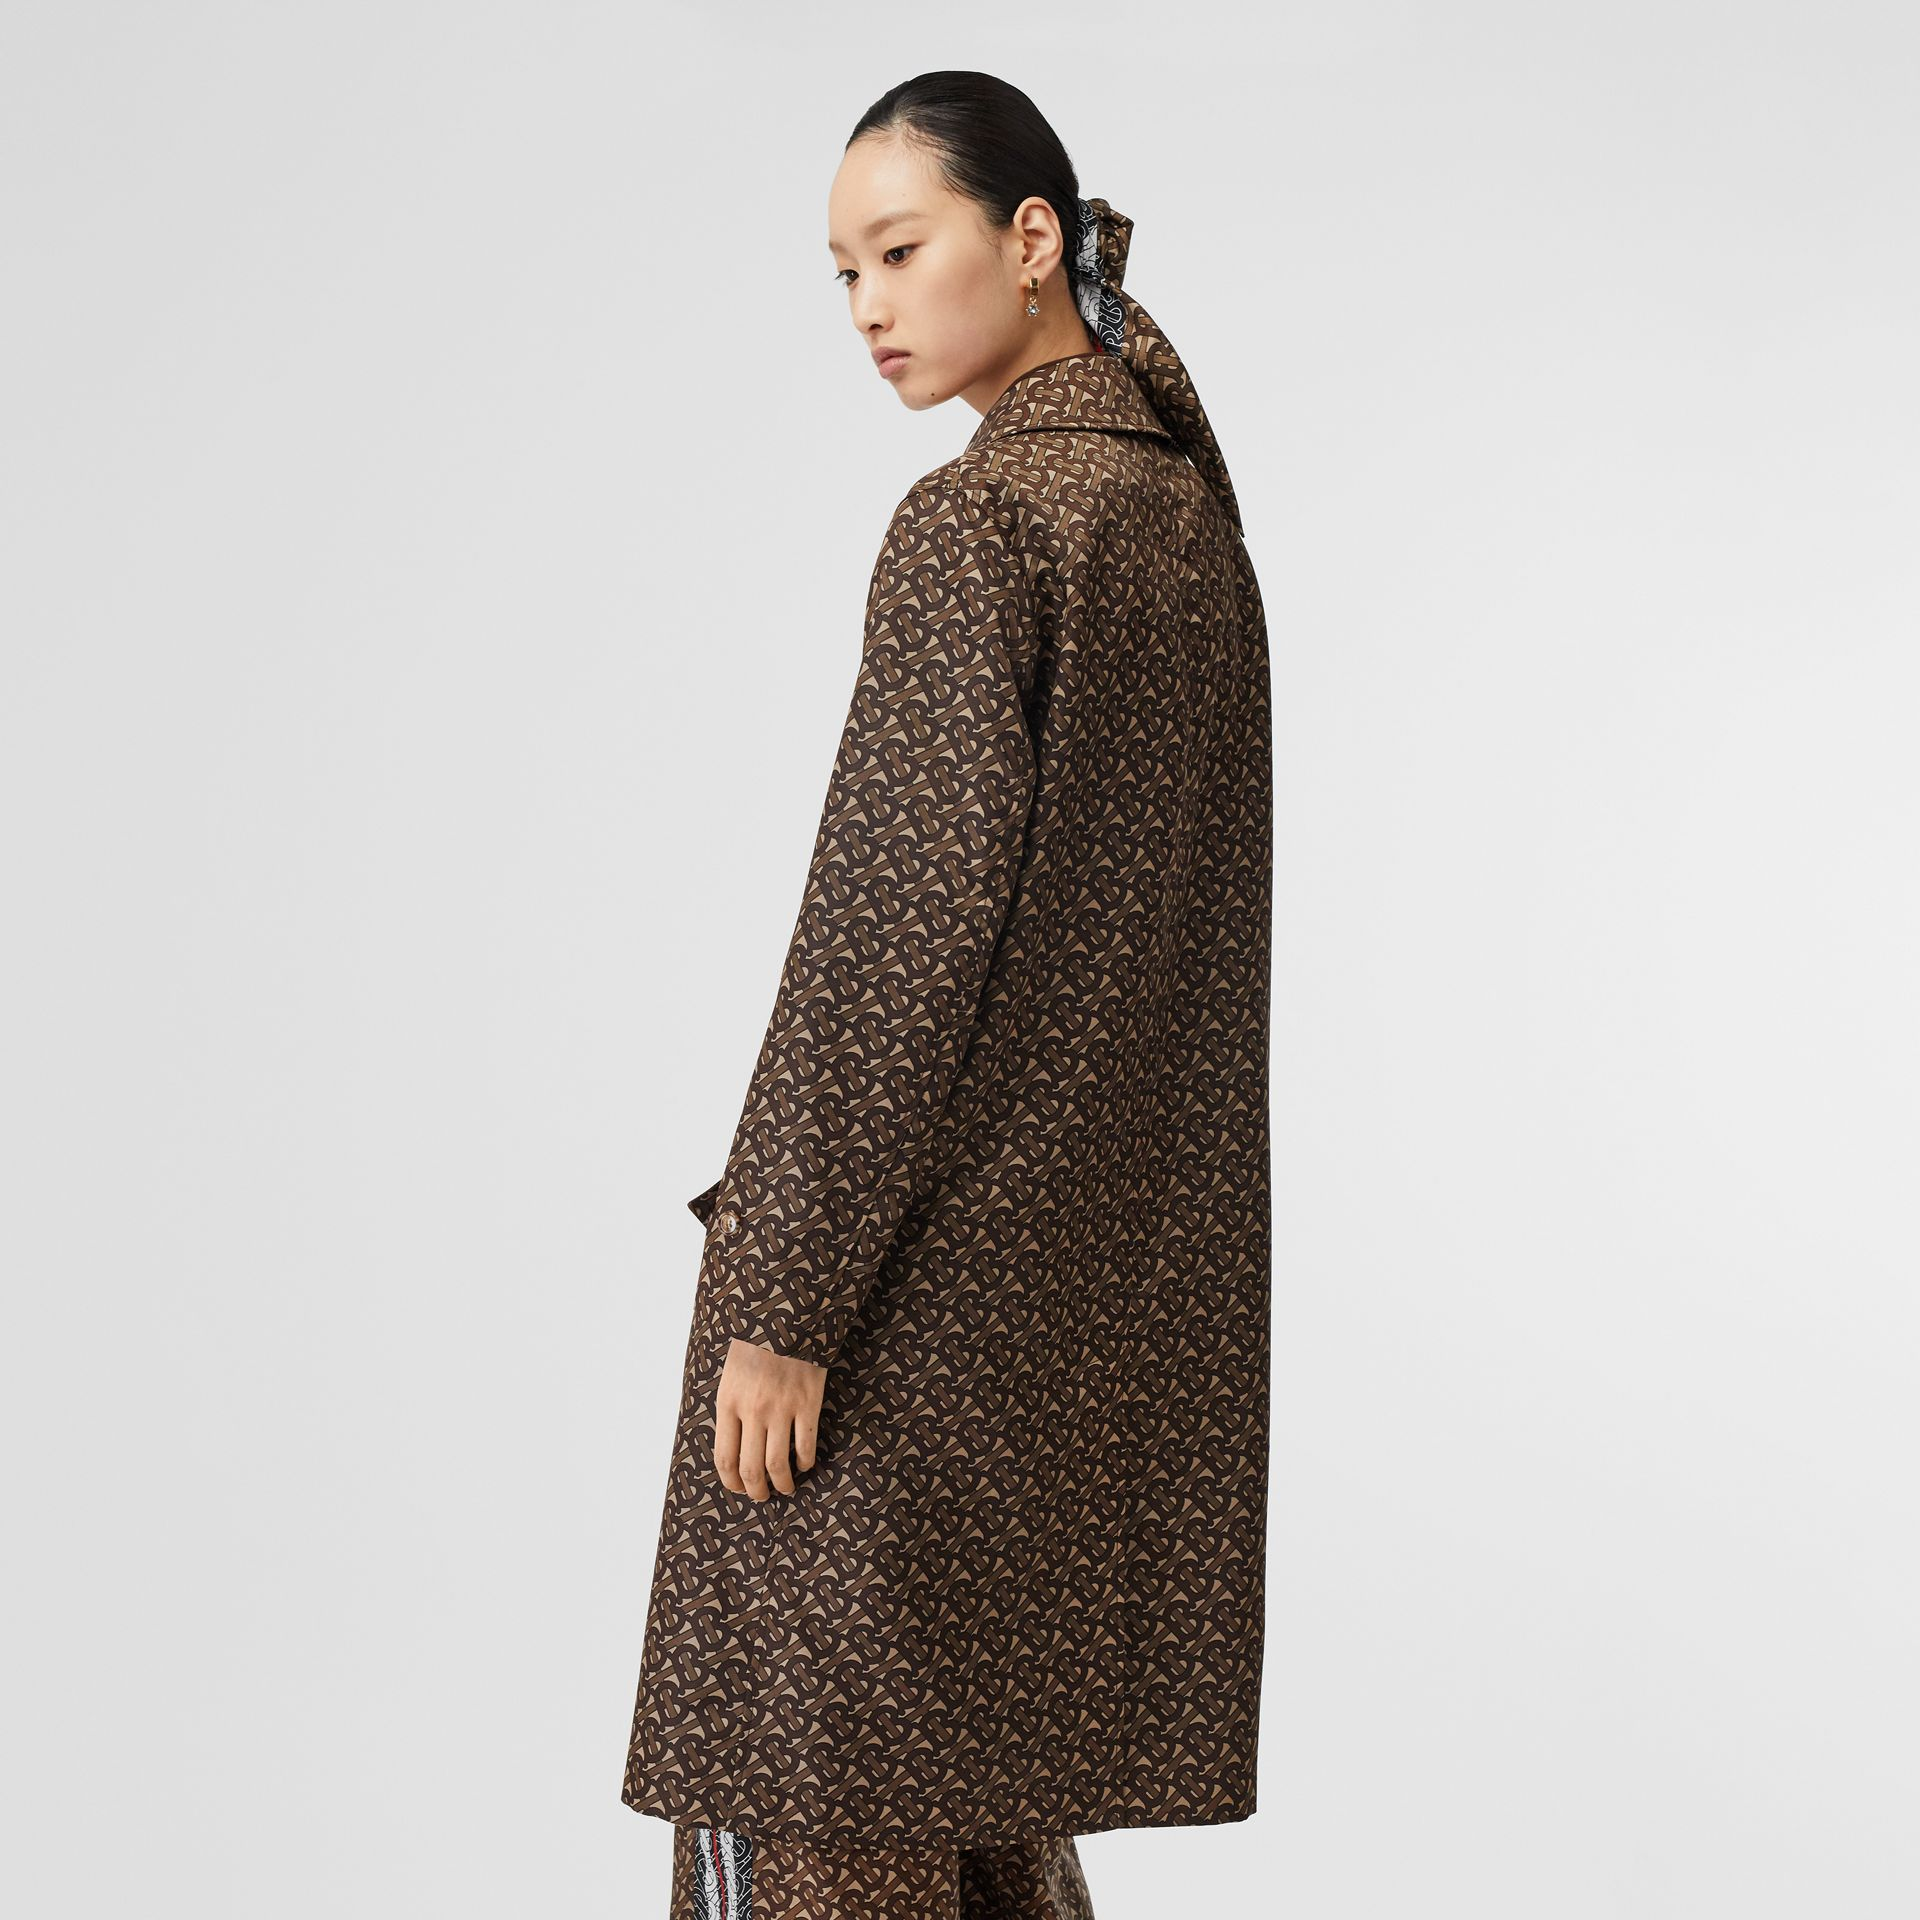 Monogram Stripe Print Nylon Car Coat in Bridle Brown - Women | Burberry - gallery image 2